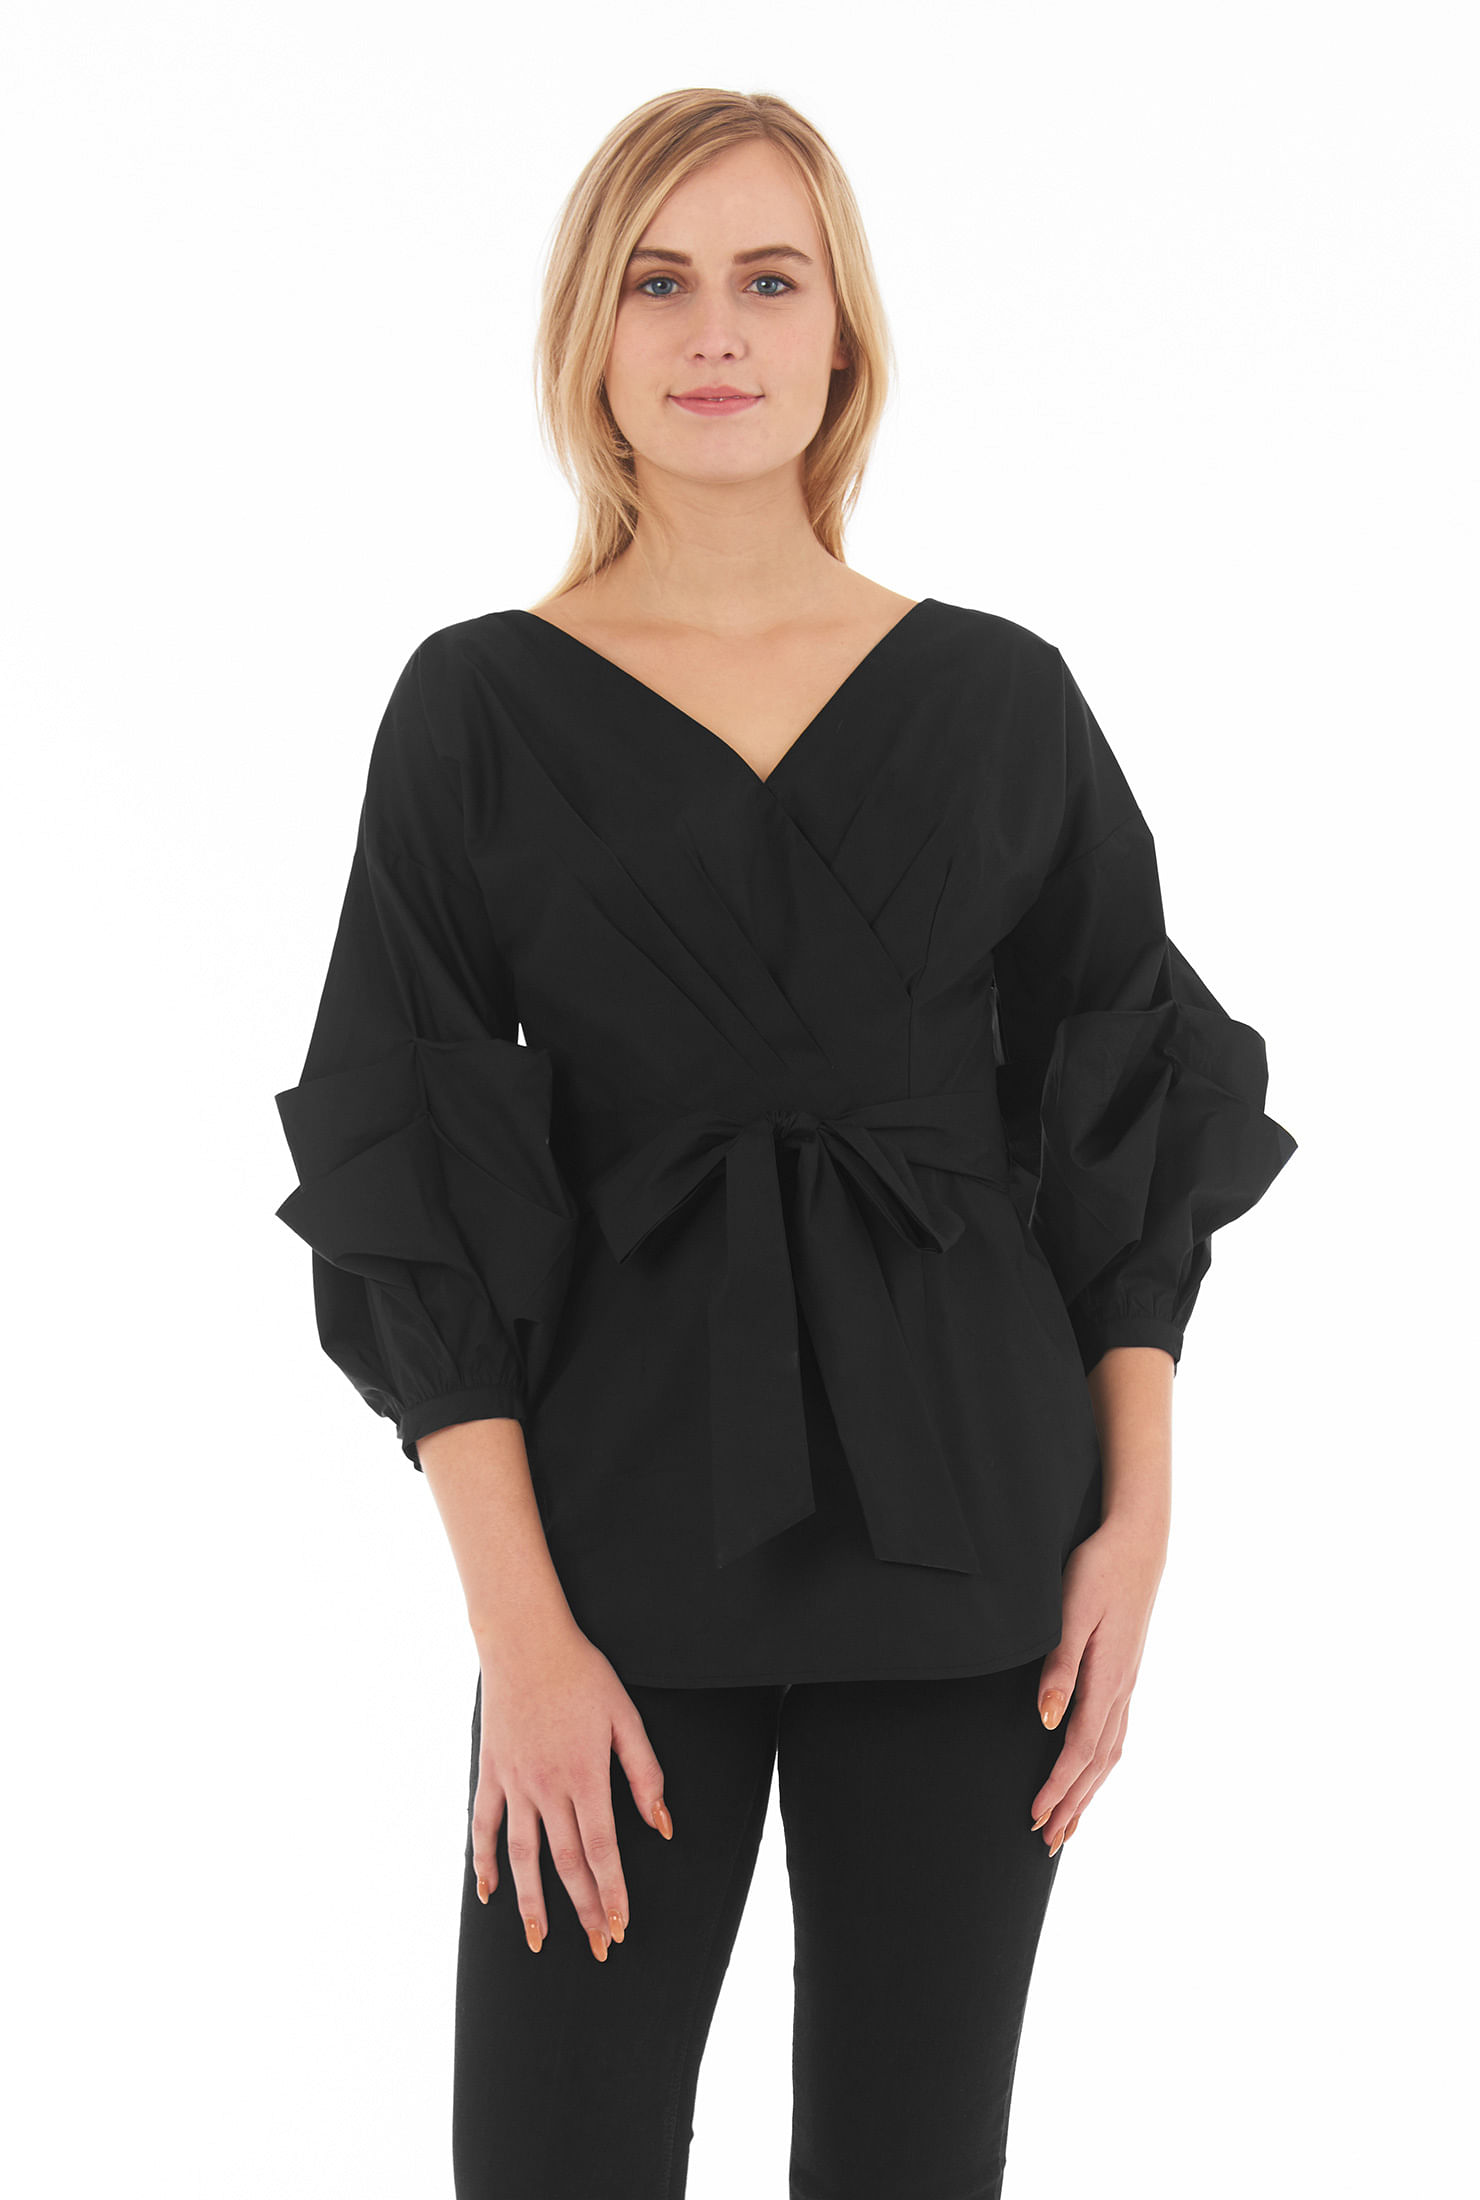 eShakti Women's Statement sleeve poplin top